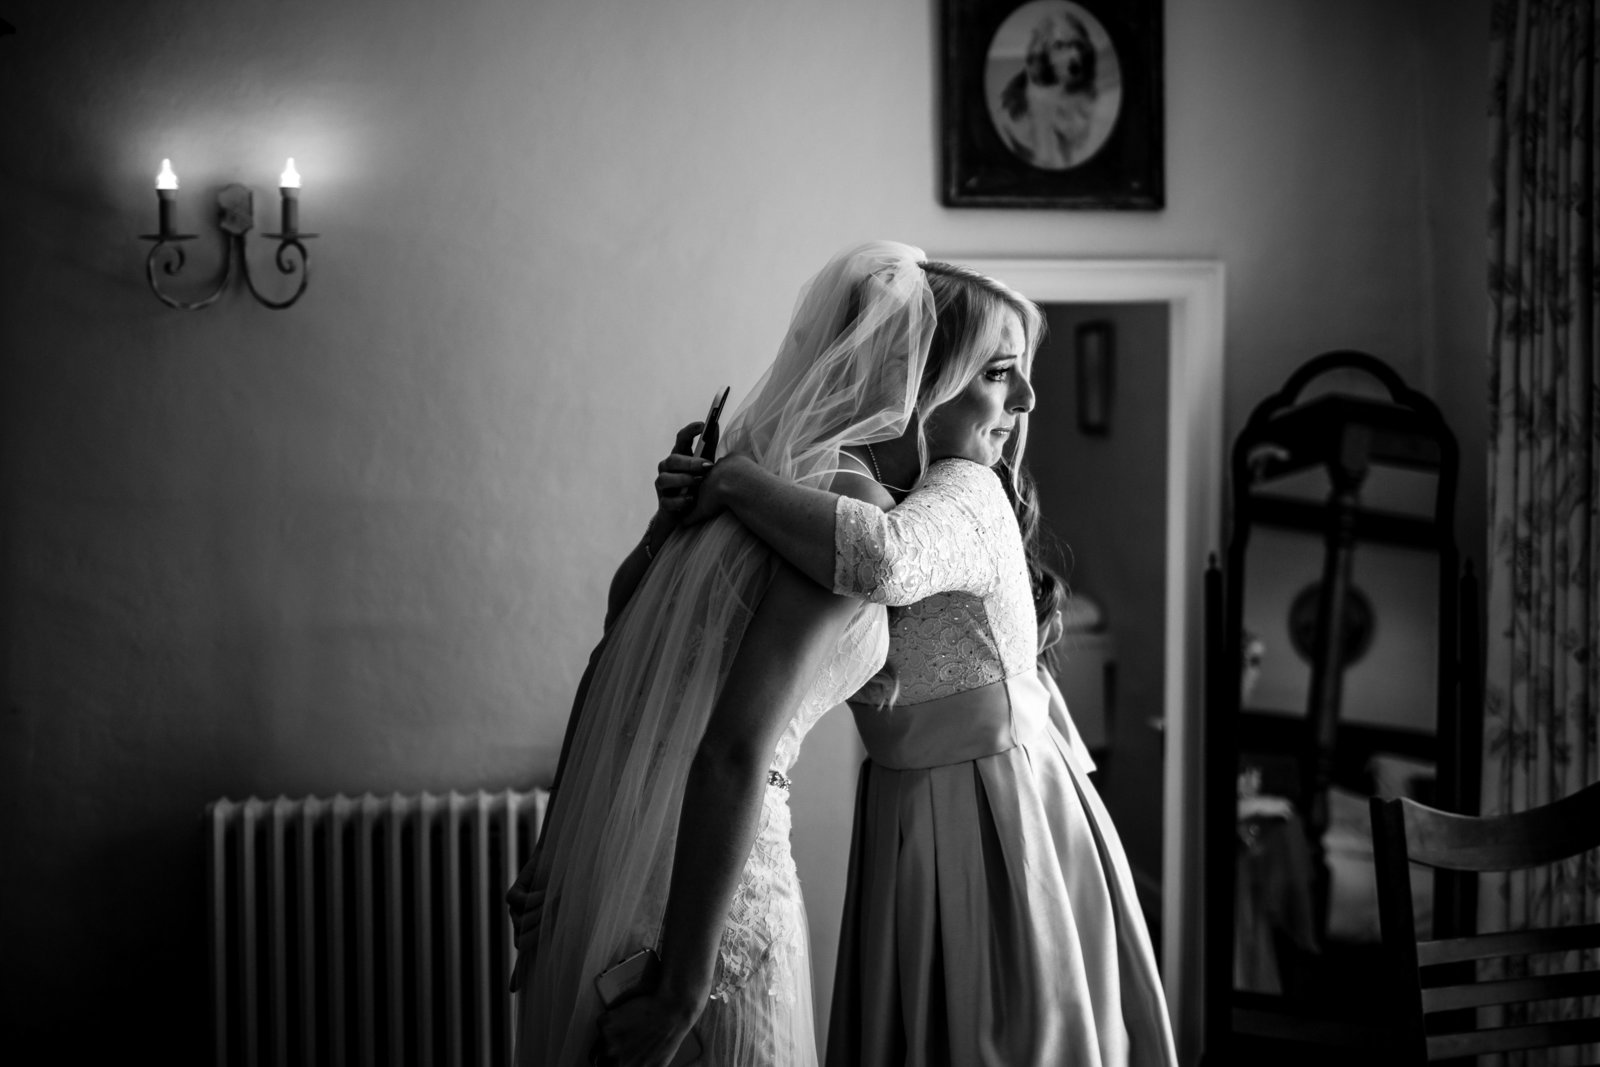 A bridesmaid gives an emotional bride a hug before the wedding ceremony